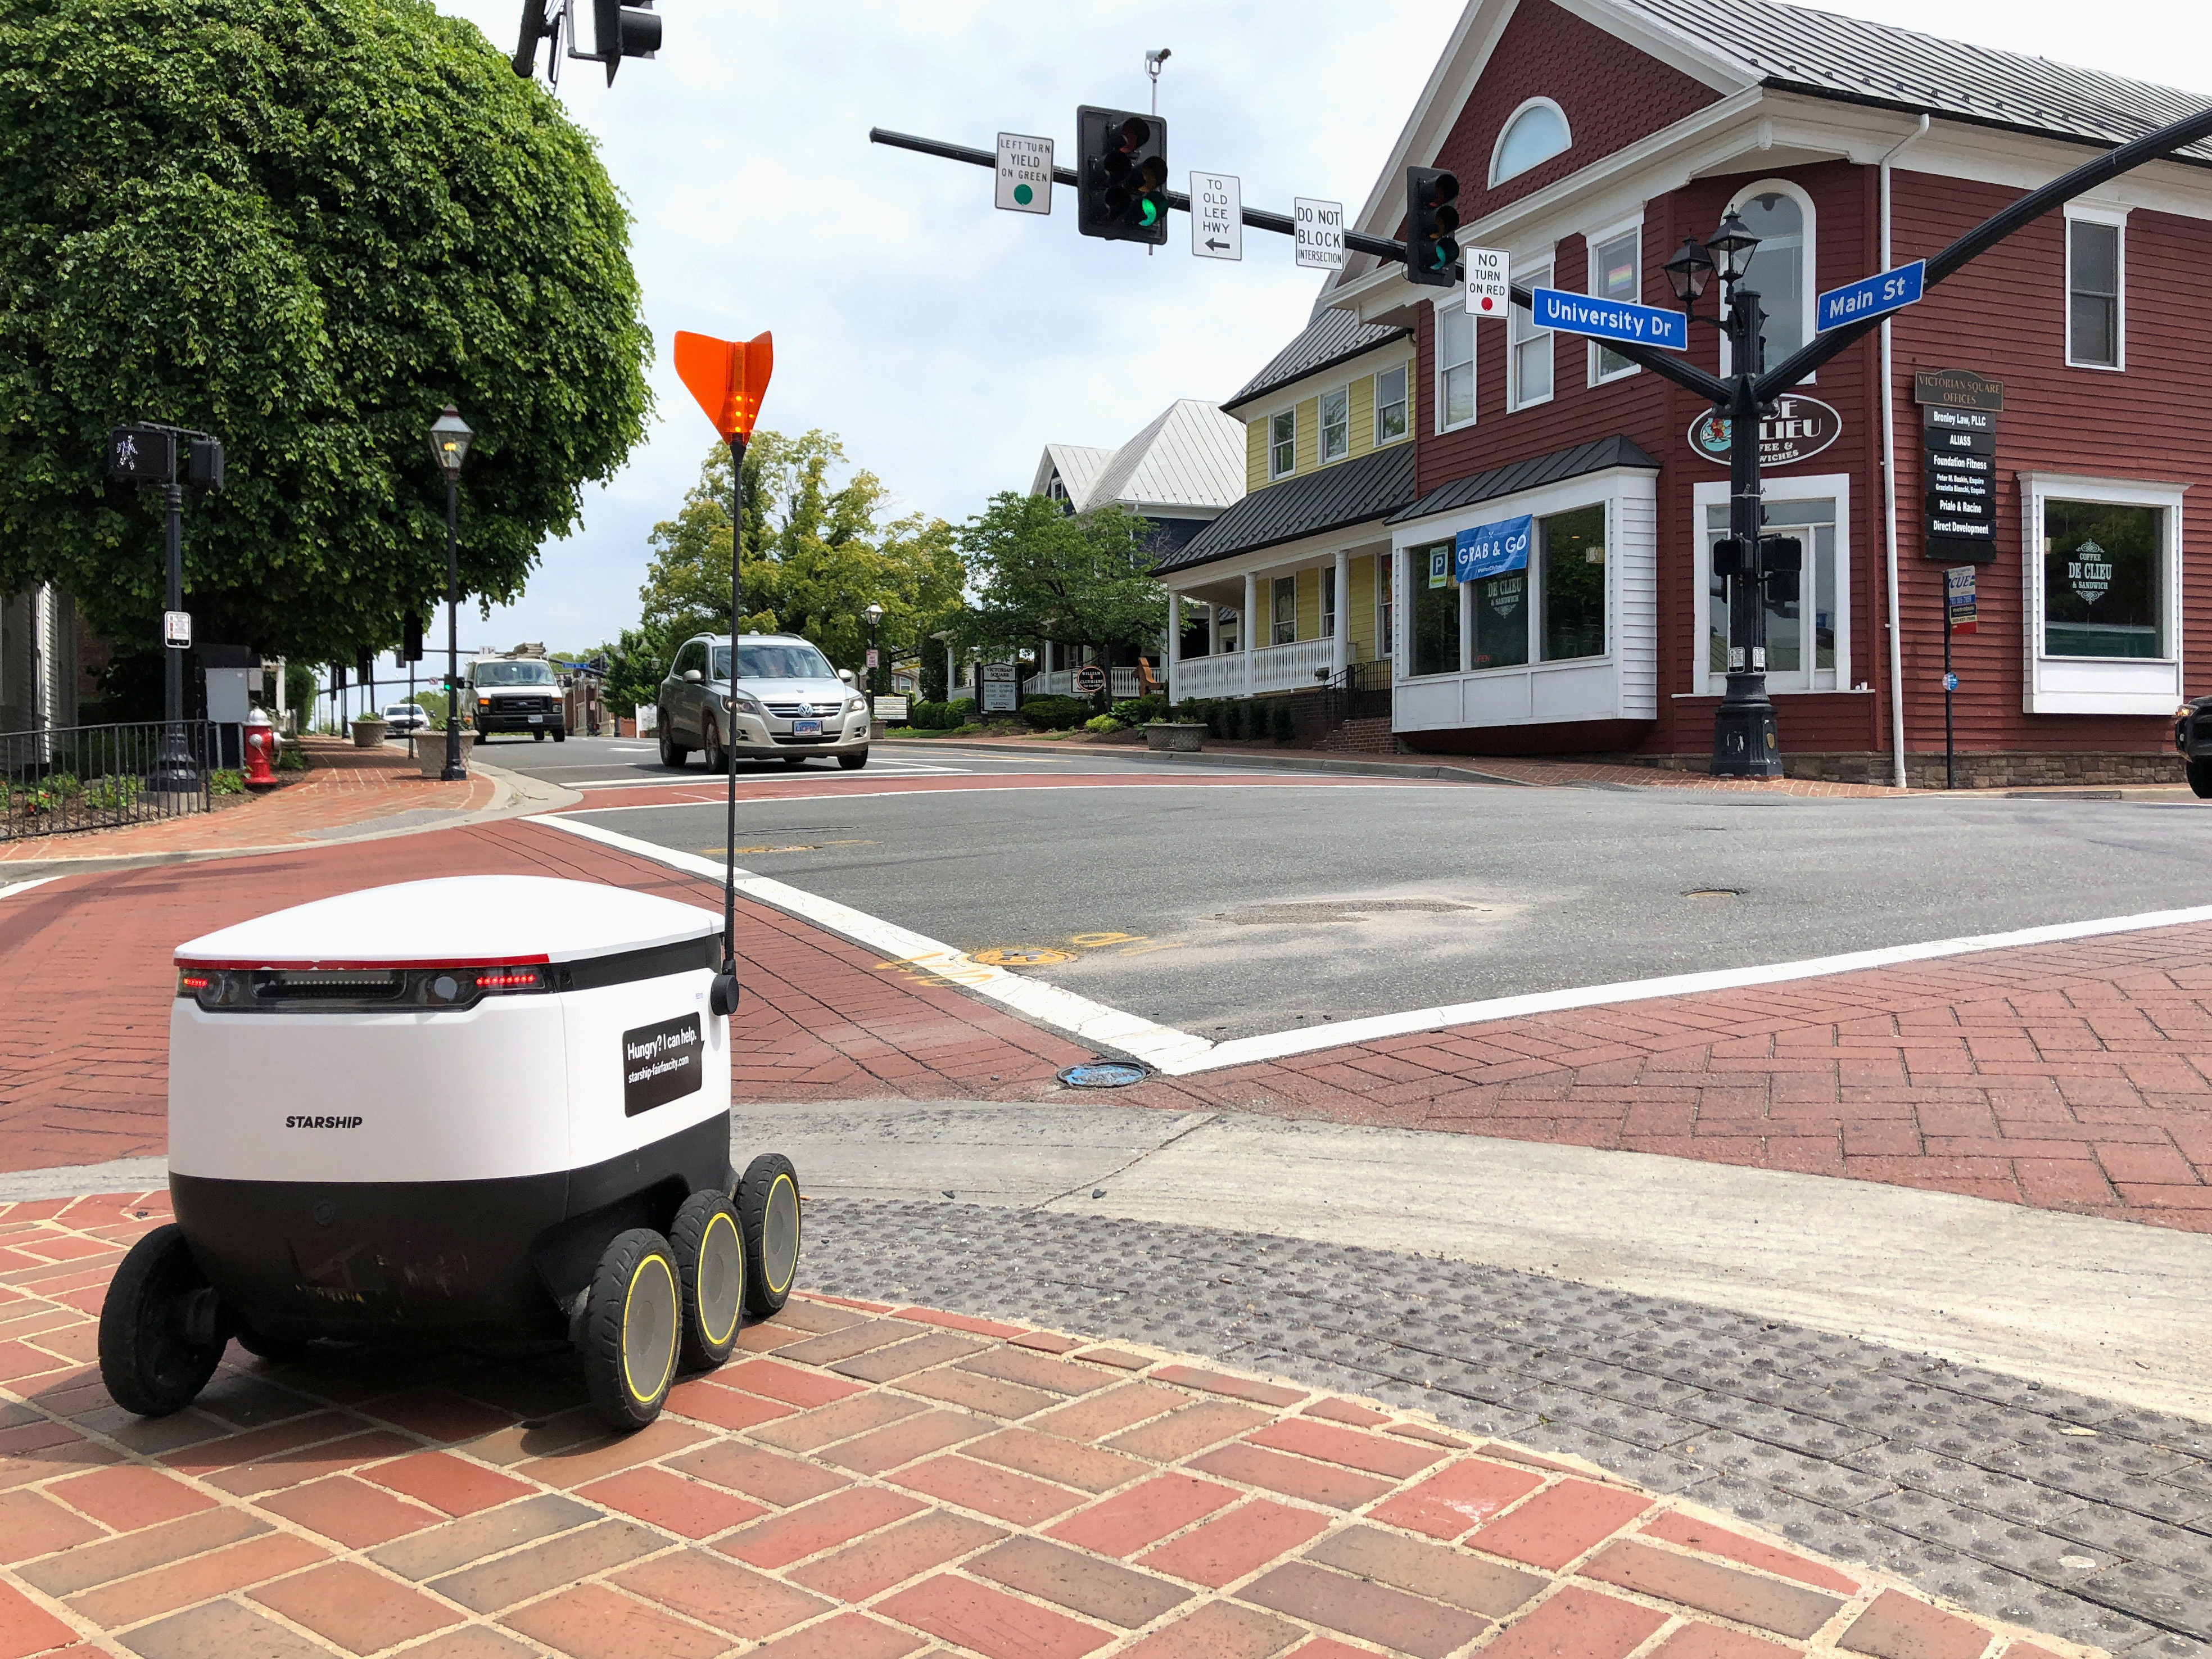 A Starship delivery robot waits to cross an intersection as it drives itself to deliver food amid the coronavirus disease (COVID-19) outbreak in Fairfax, Virginia, U.S., May 15, 2020.   REUTERS/Julio-Cesar Chavez - RC27RG902W0P